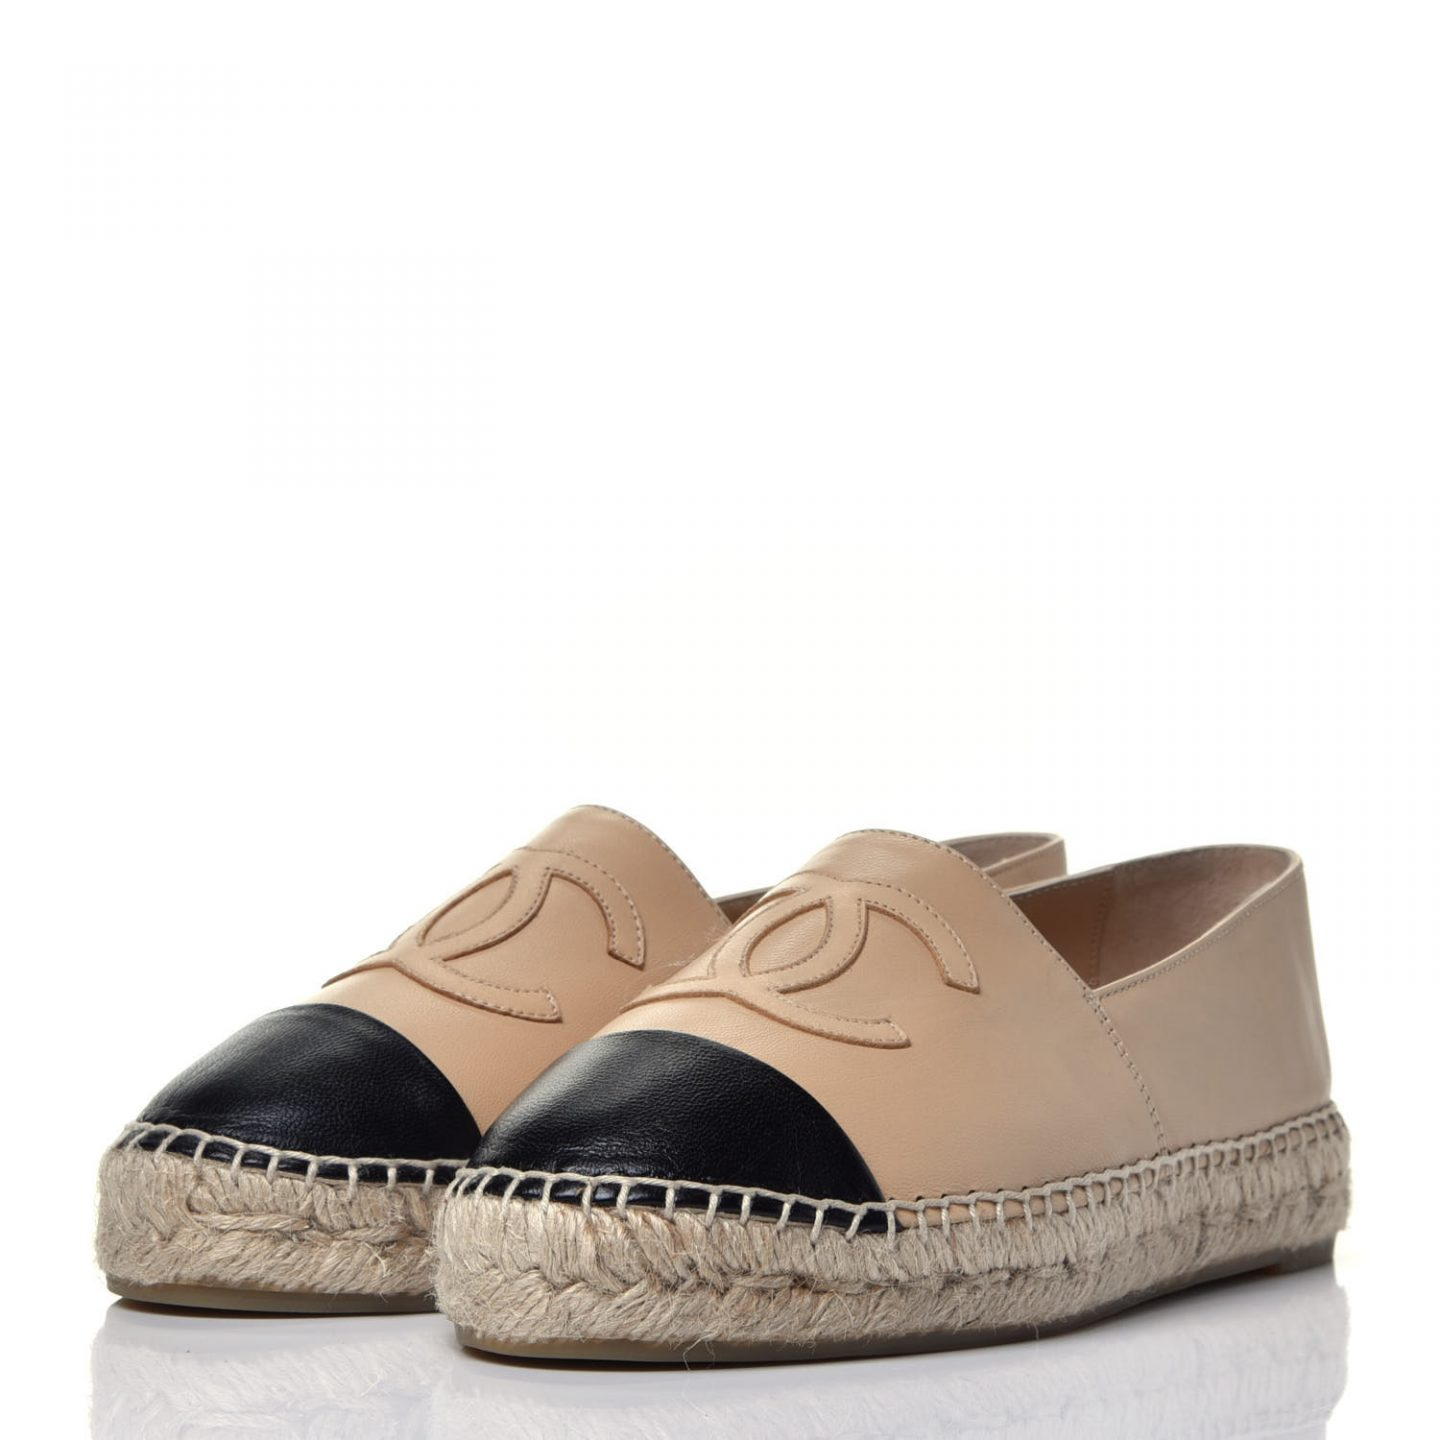 Two tone lambskin Chanel espadrilles from Fashionphile